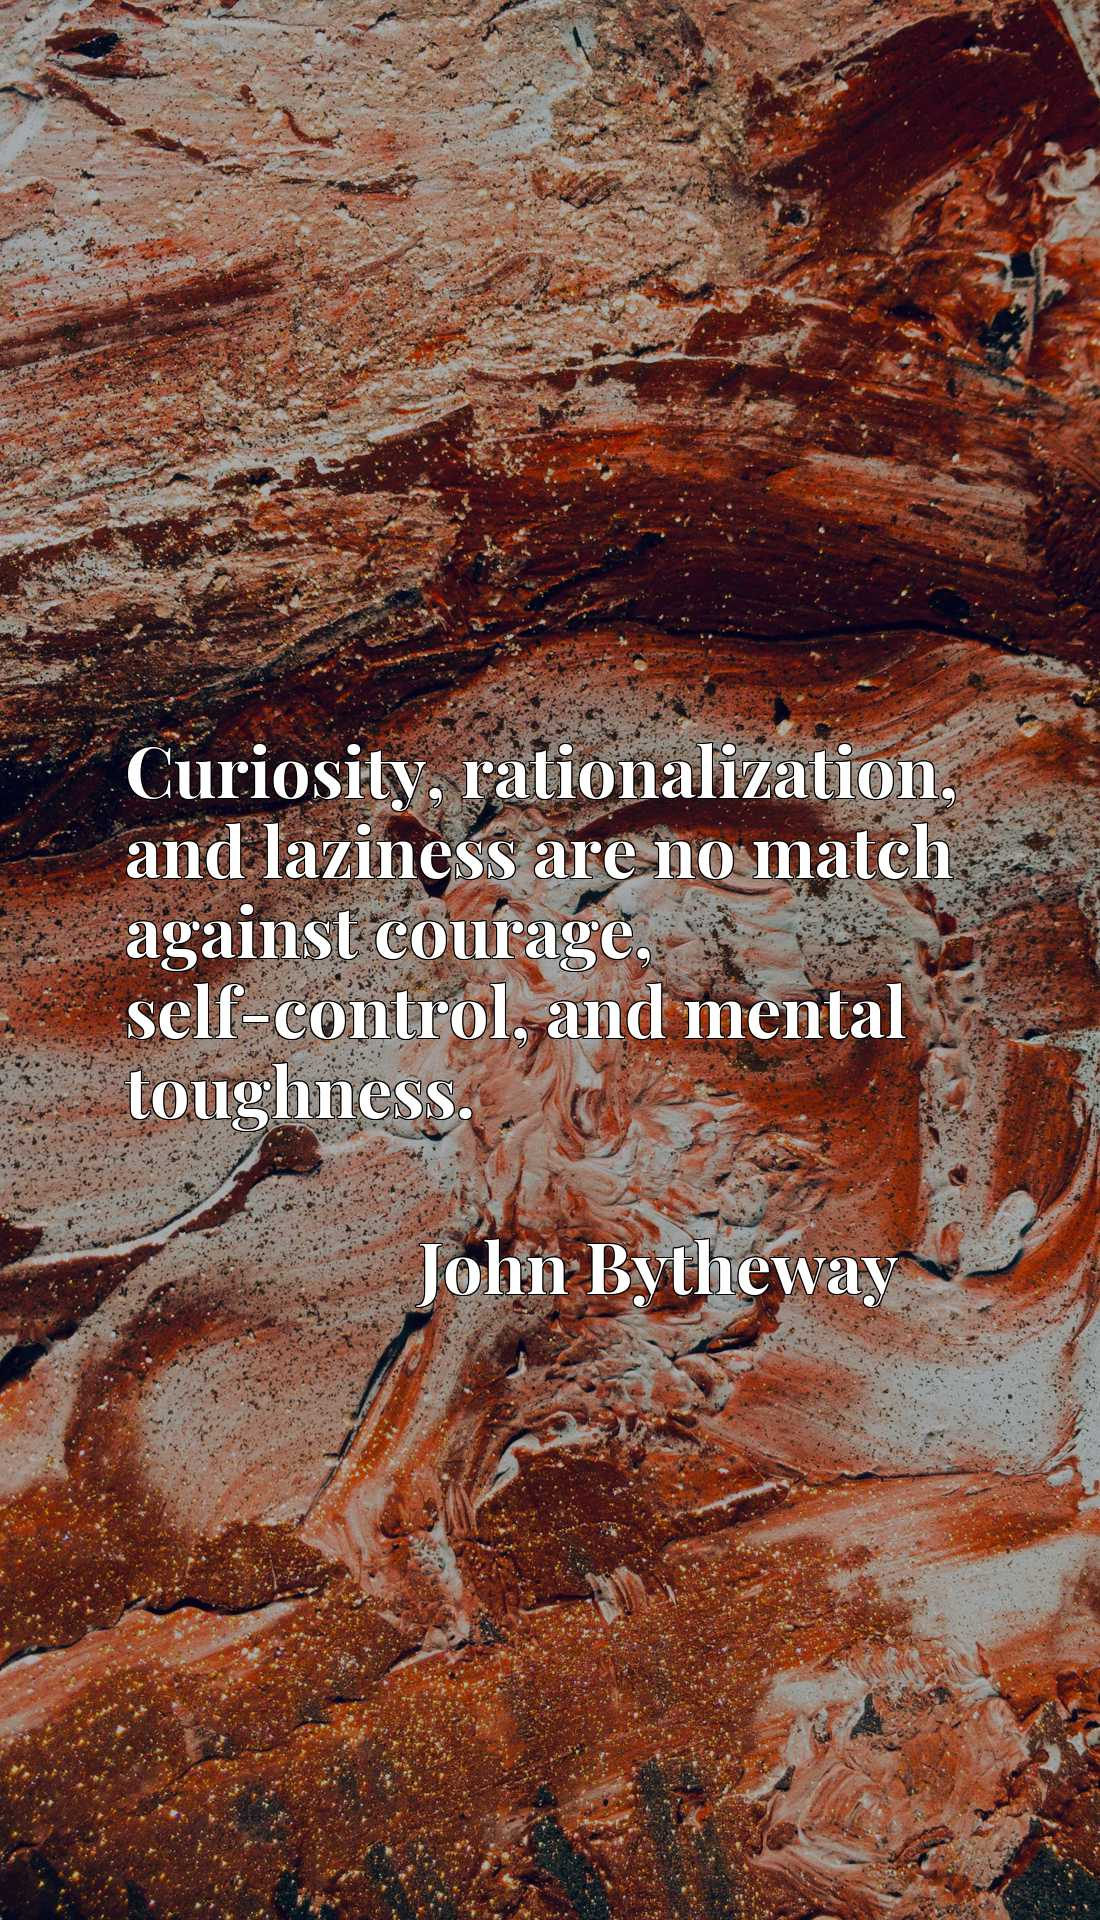 Curiosity, rationalization, and laziness are no match against courage, self-control, and mental toughness.